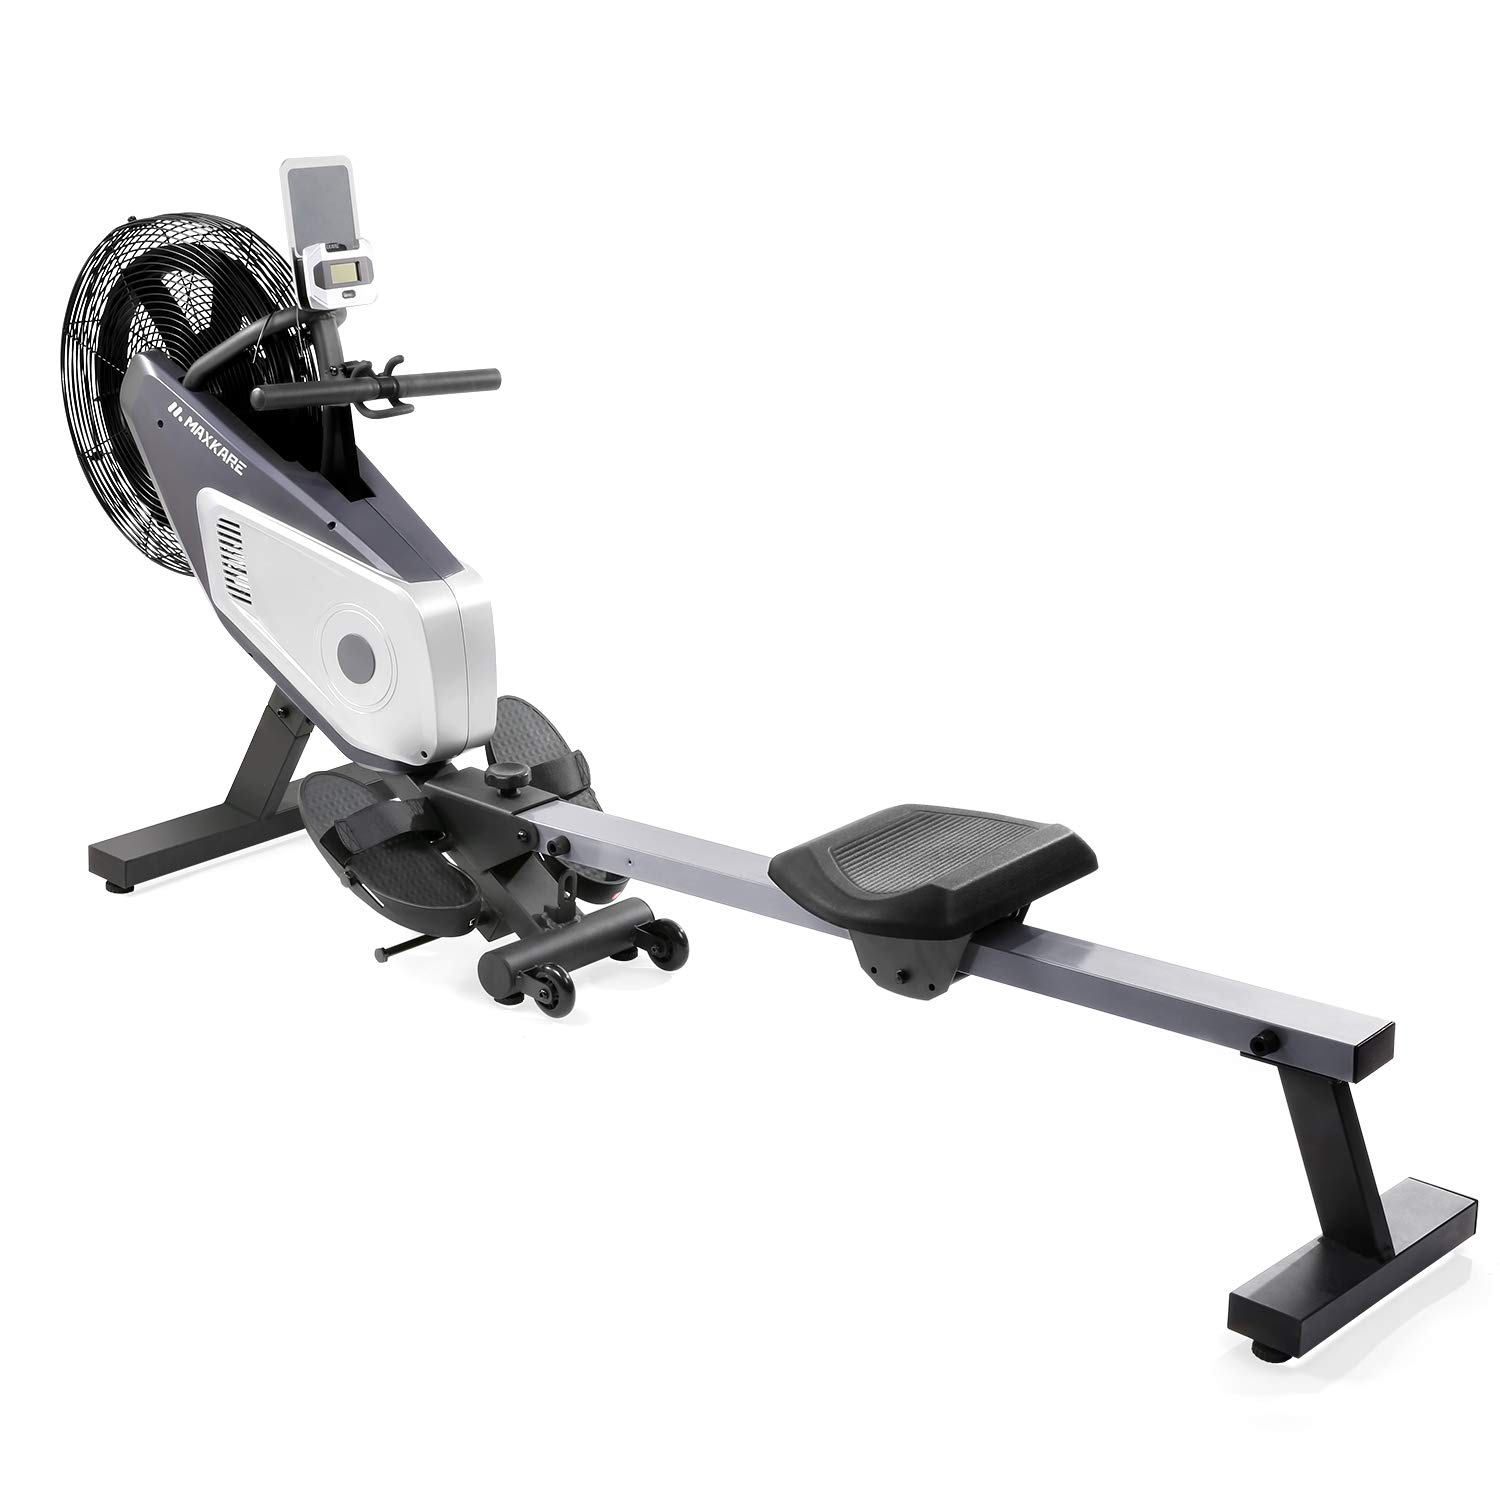 MaxKare Air Rower, Rowing Machine, Dual Belt Dynamic Air Resistance with LCD Monitor for Home Use. by MaxKare